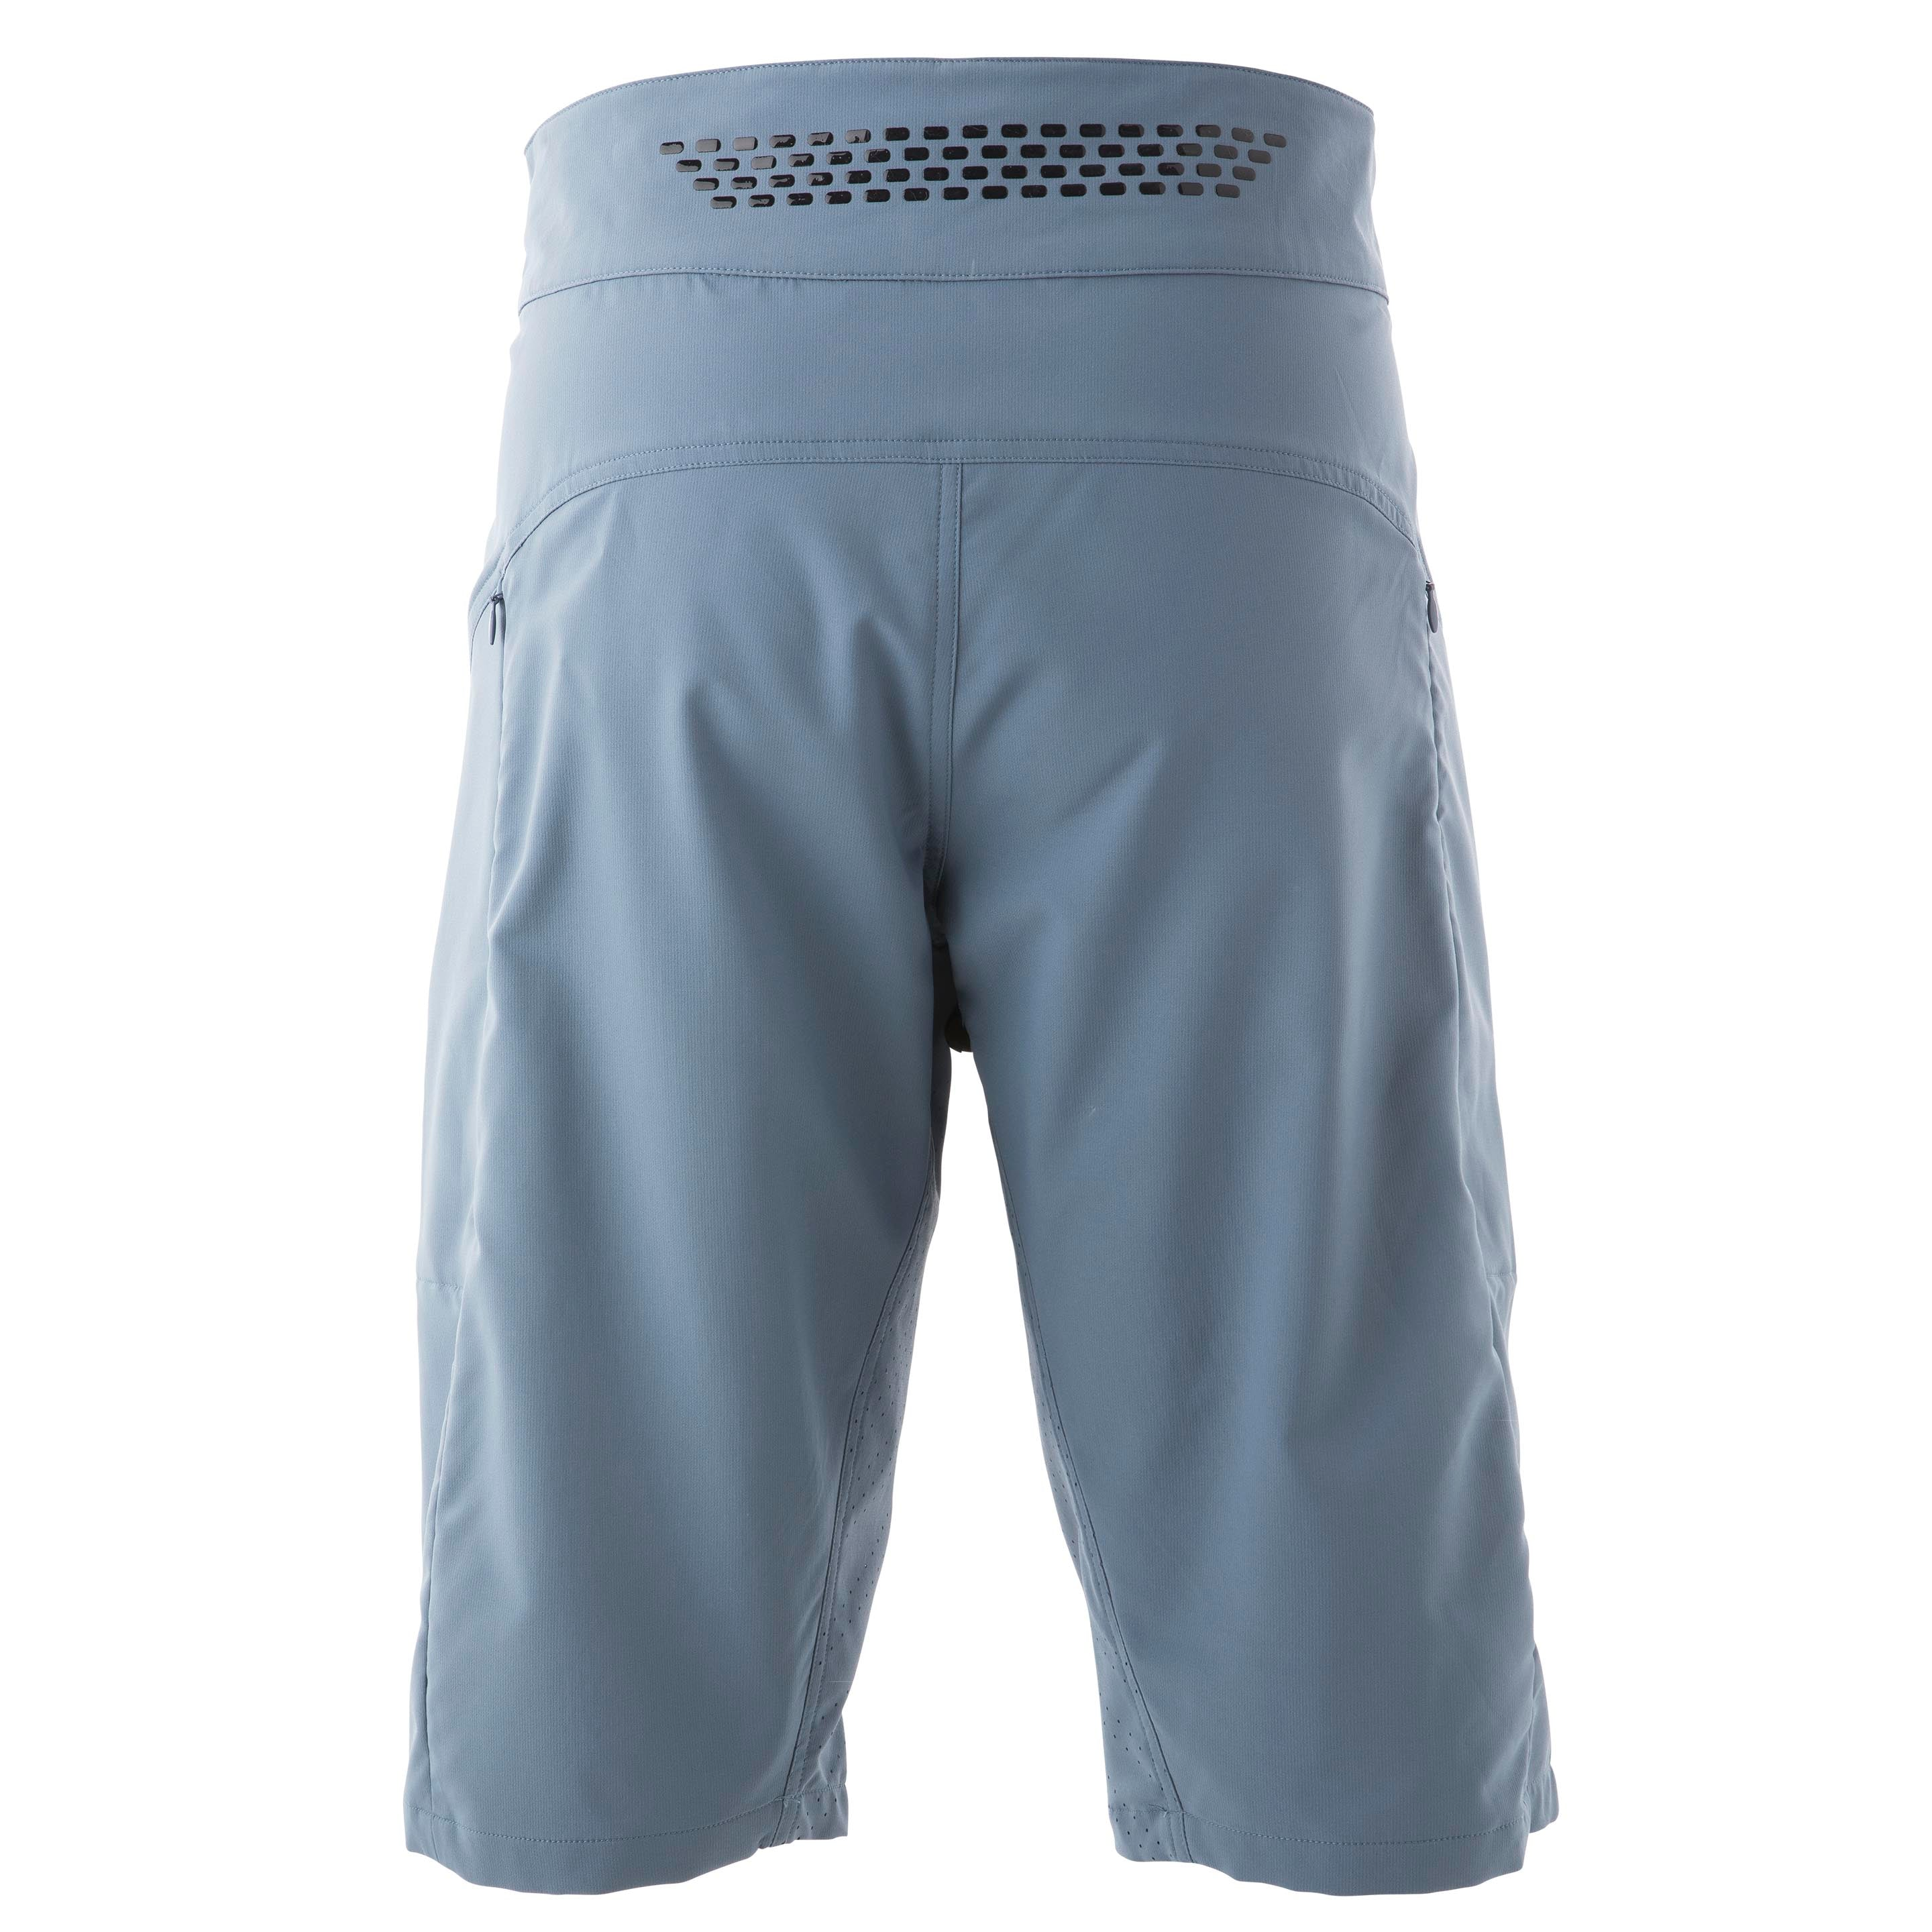 ENDURO SHORT SL/NVY 20